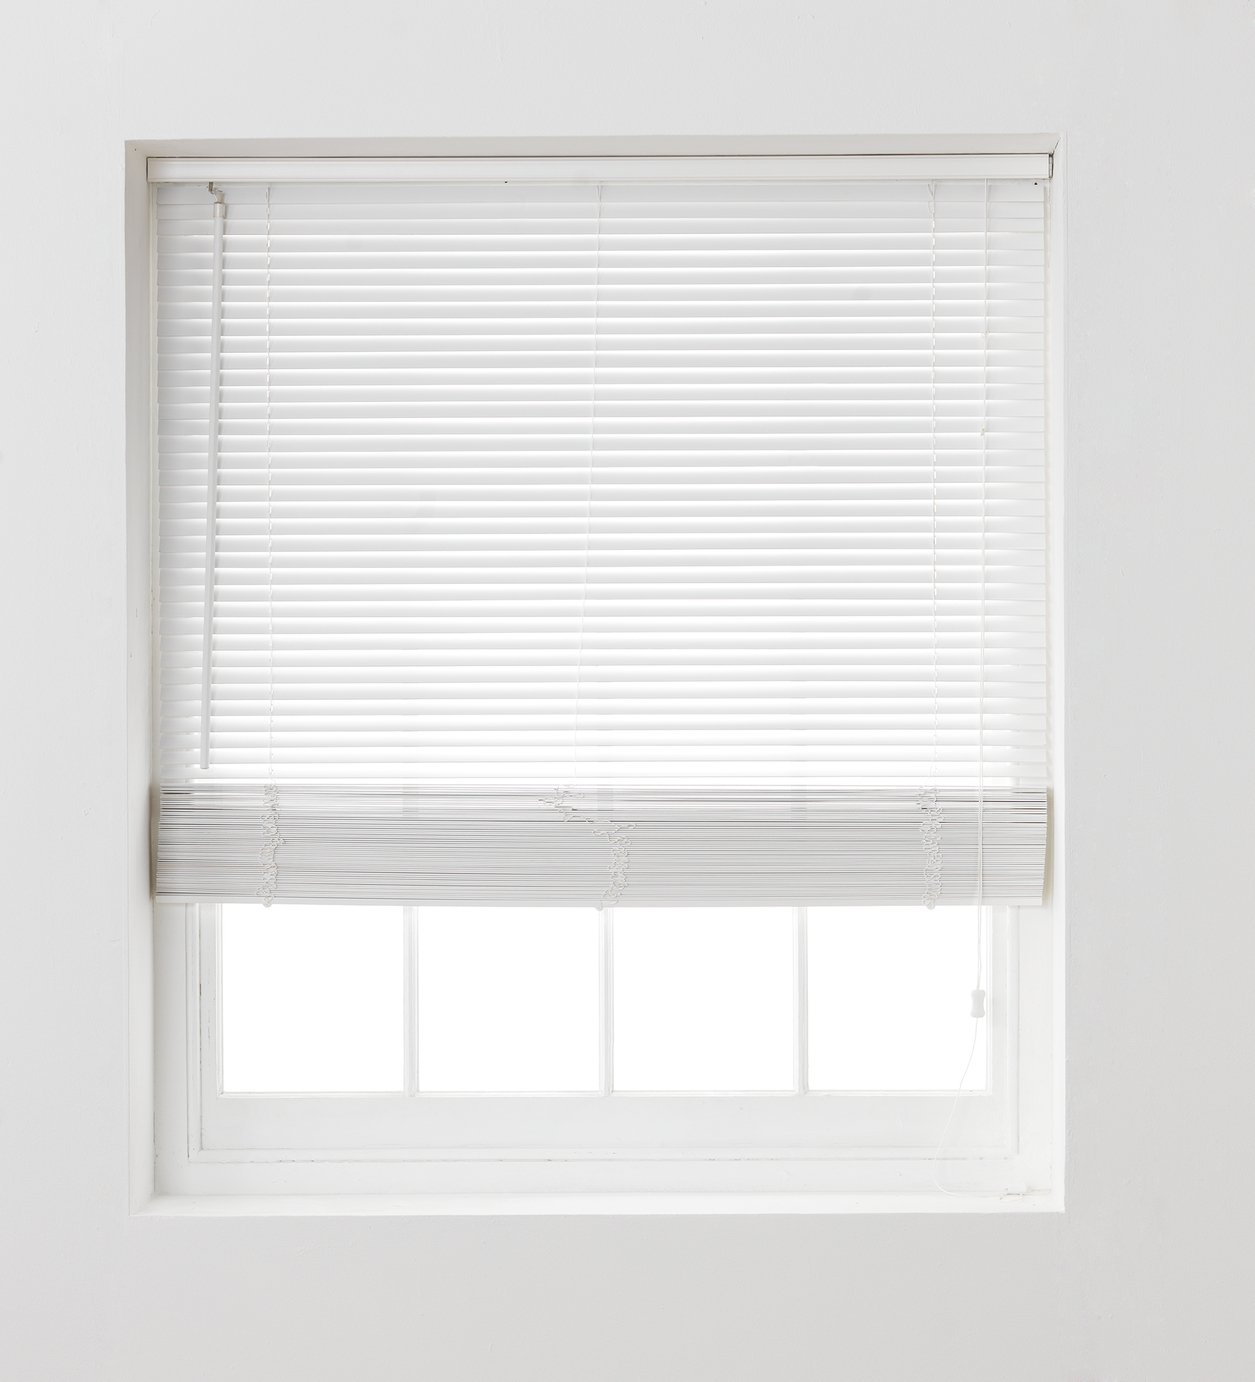 Buy Argos Home Wooden Venetian Blind 2ft White Blinds Argos